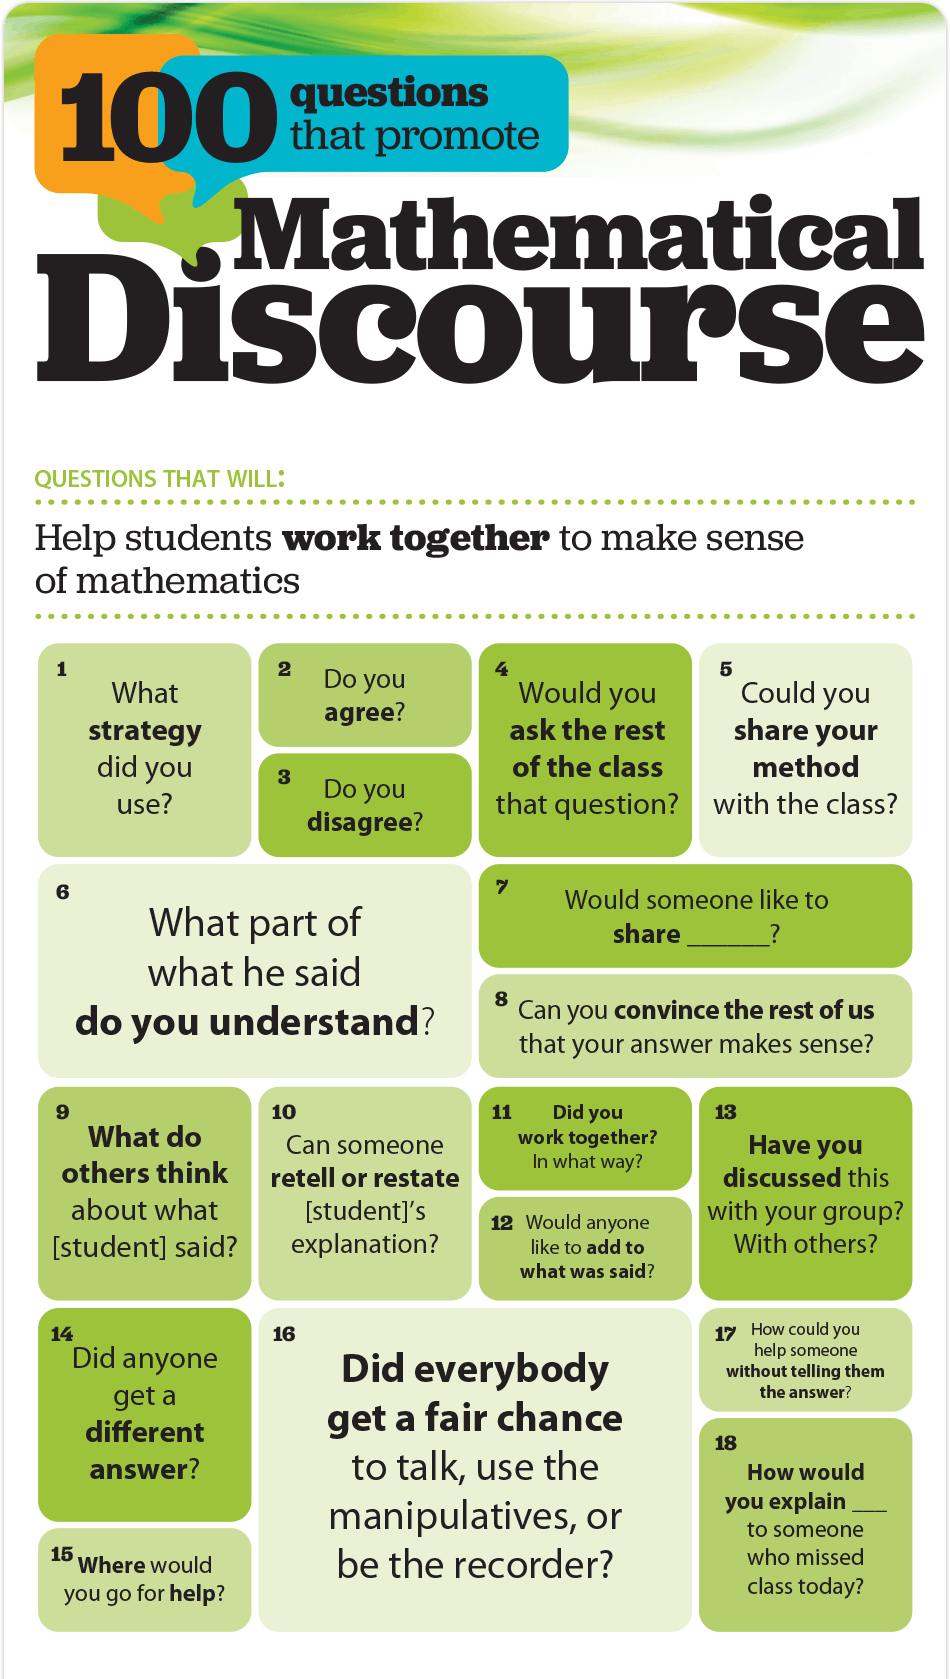 talking math questions that help promote mathematical discourse ccs 19925 100mathdiscousequestions infographic slice 01